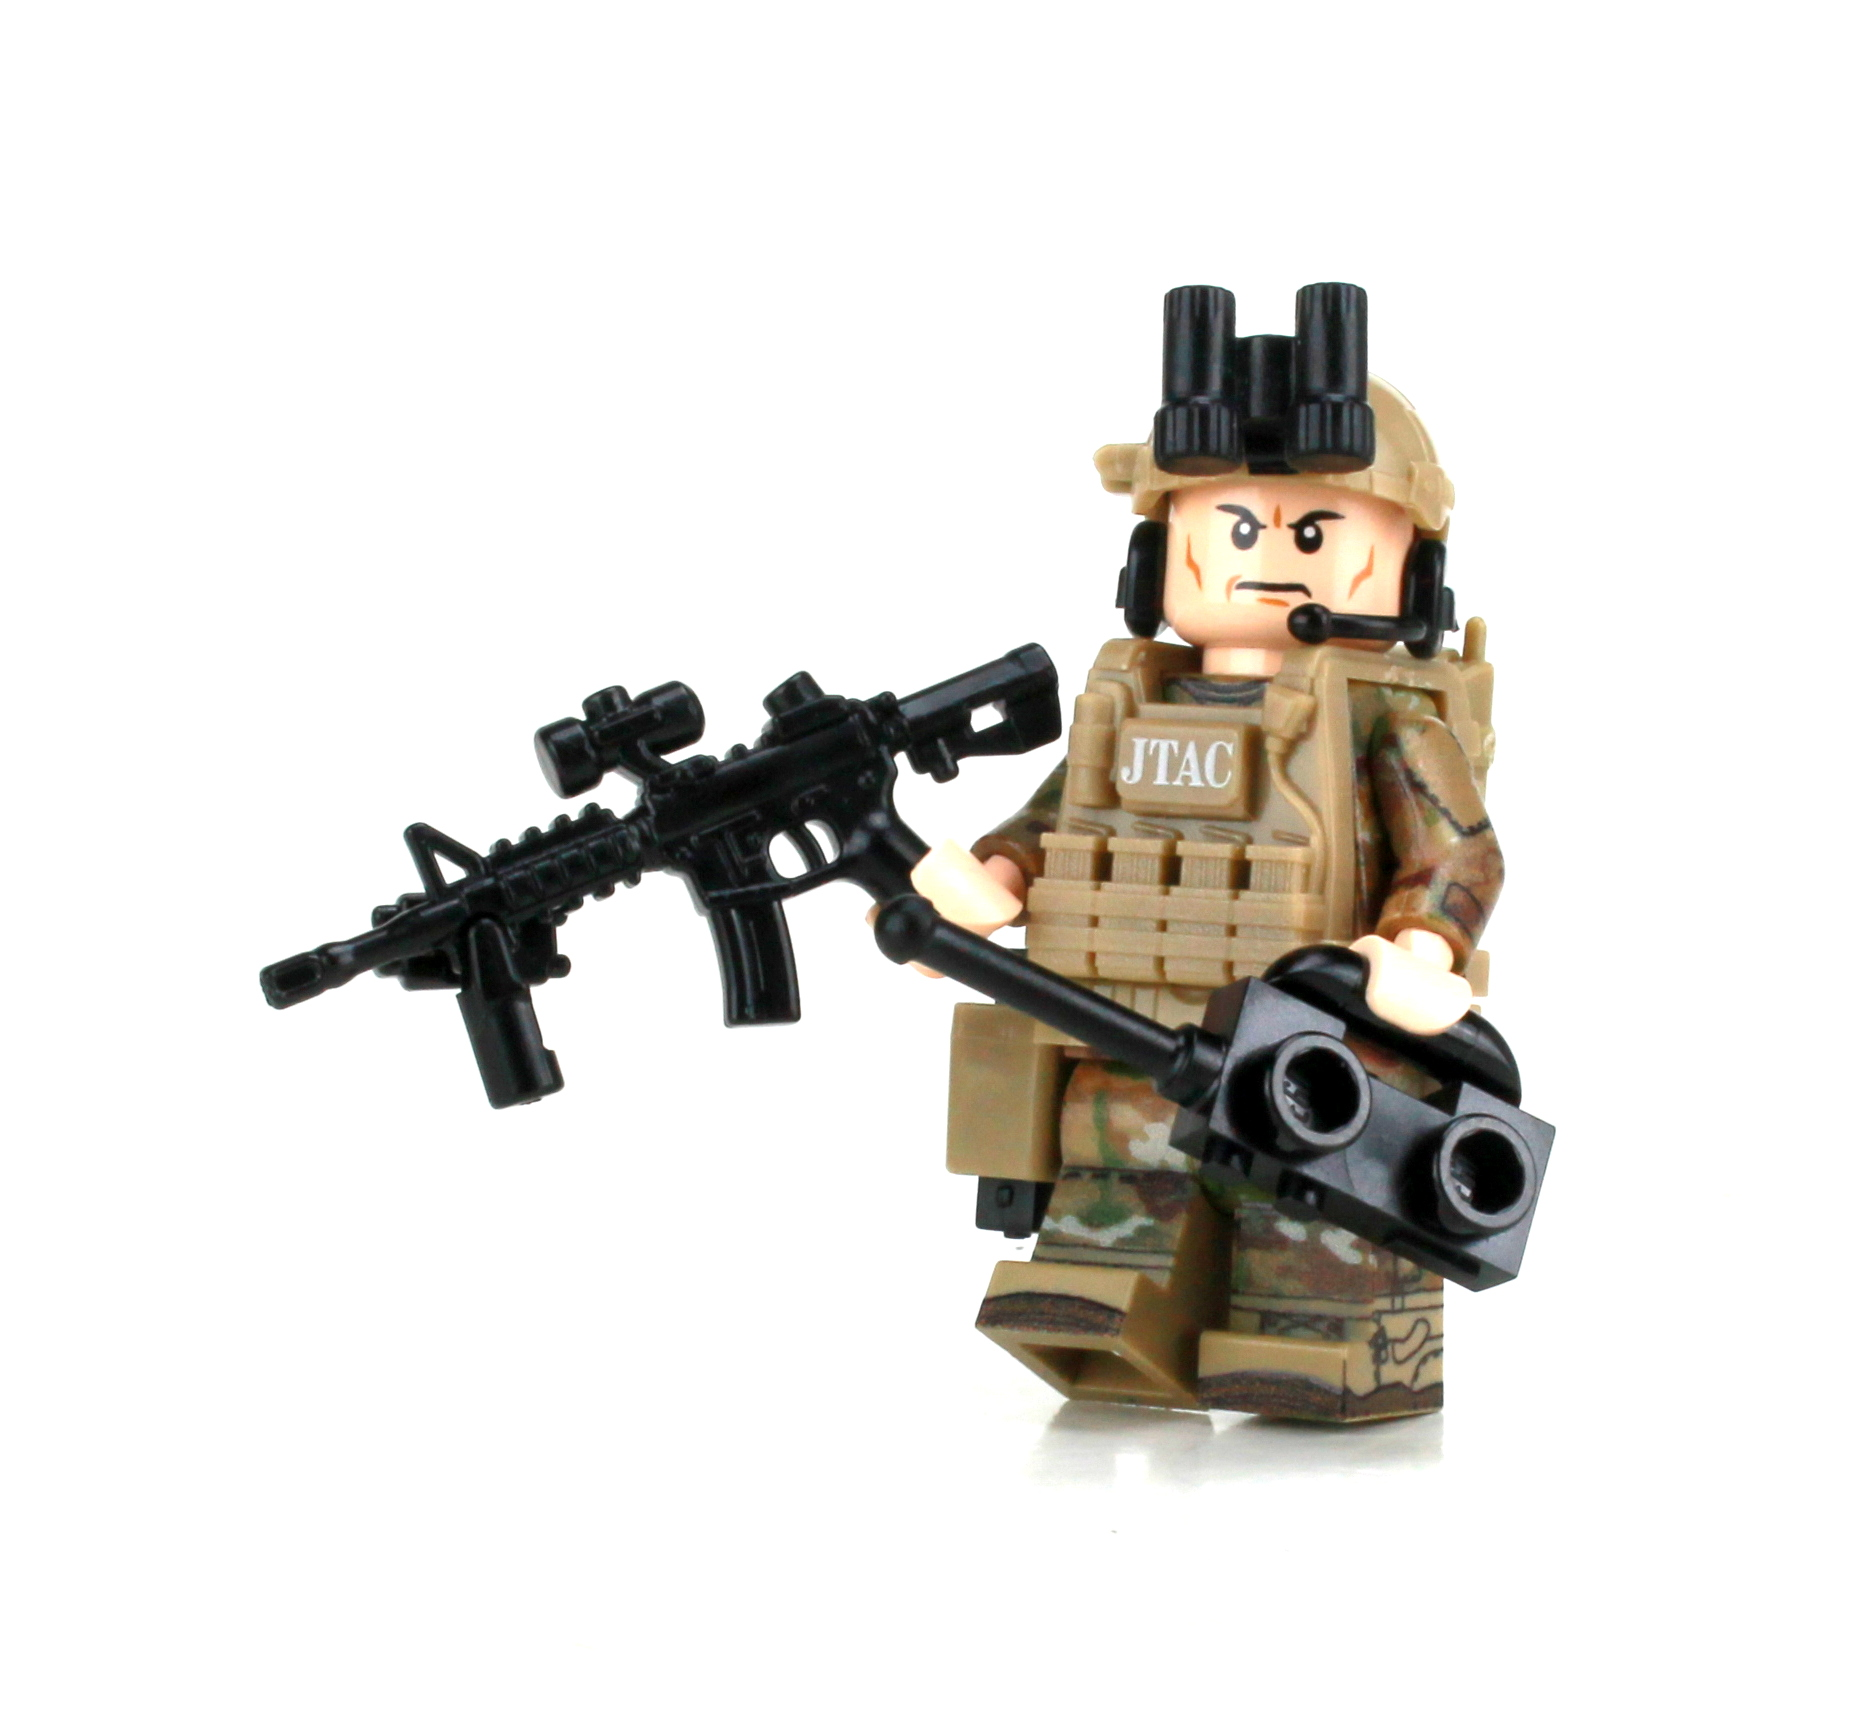 JTAC Air Force Special Forces OCP Minifigure